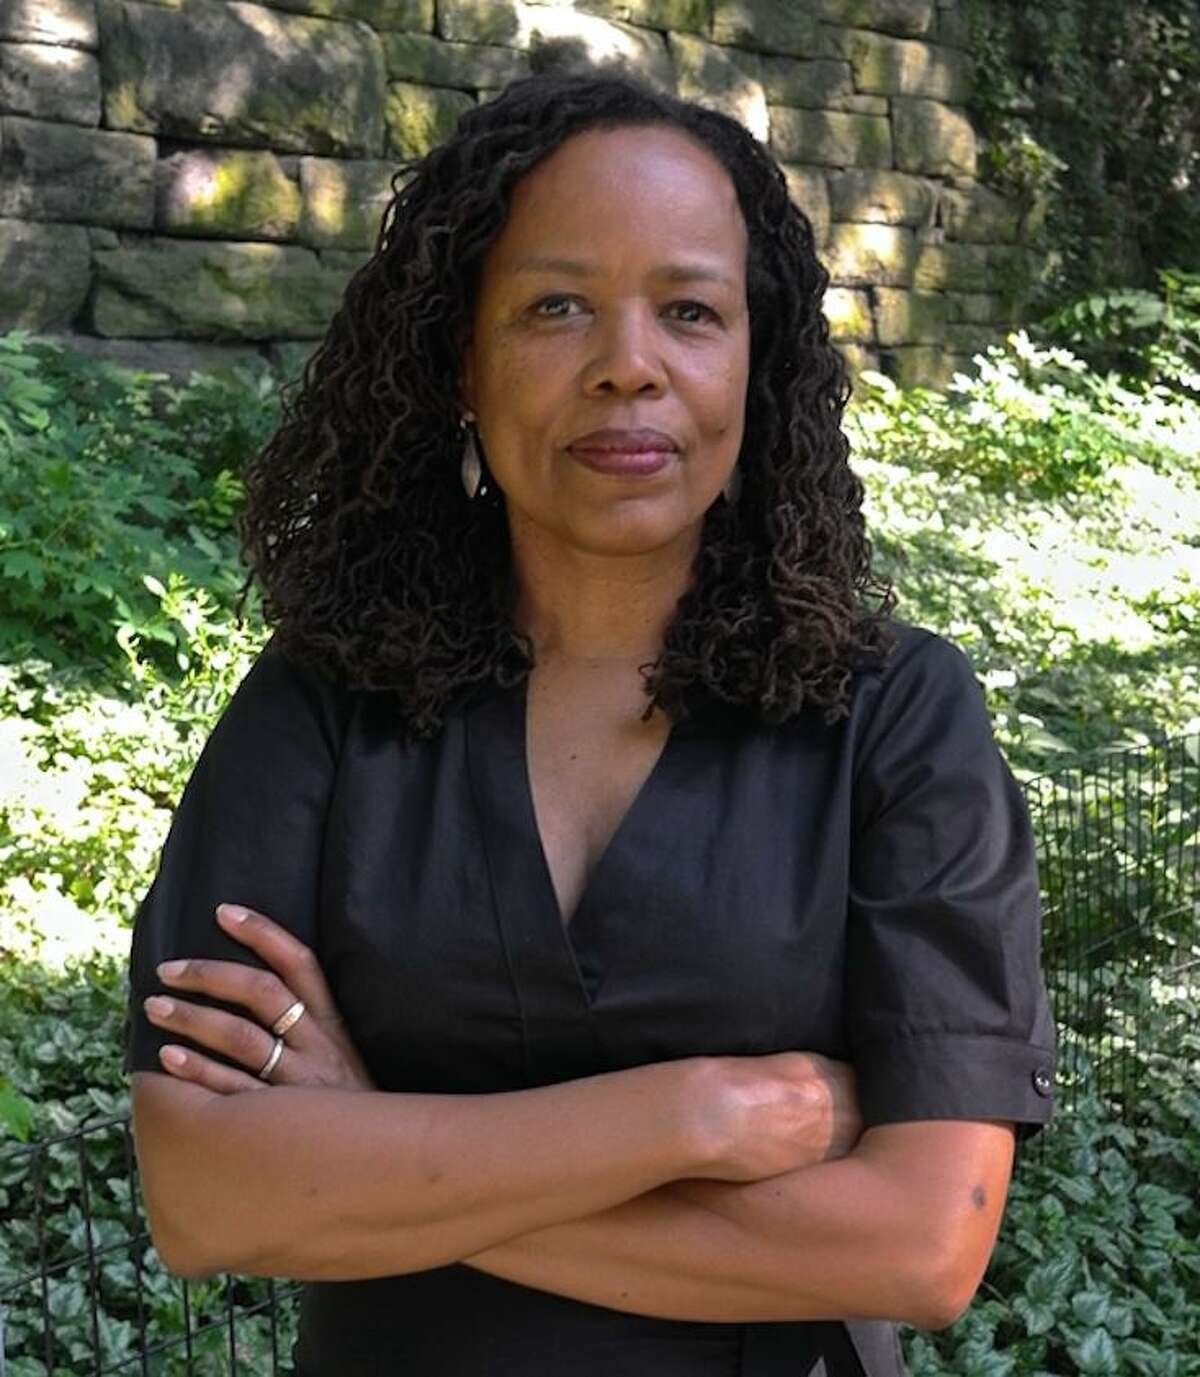 Saidiya Hartman is professor of English and comparative literature and women's and gender studies at Columbia University. She will deliver the Wesleyan University commencement address May 26 in Middletown.